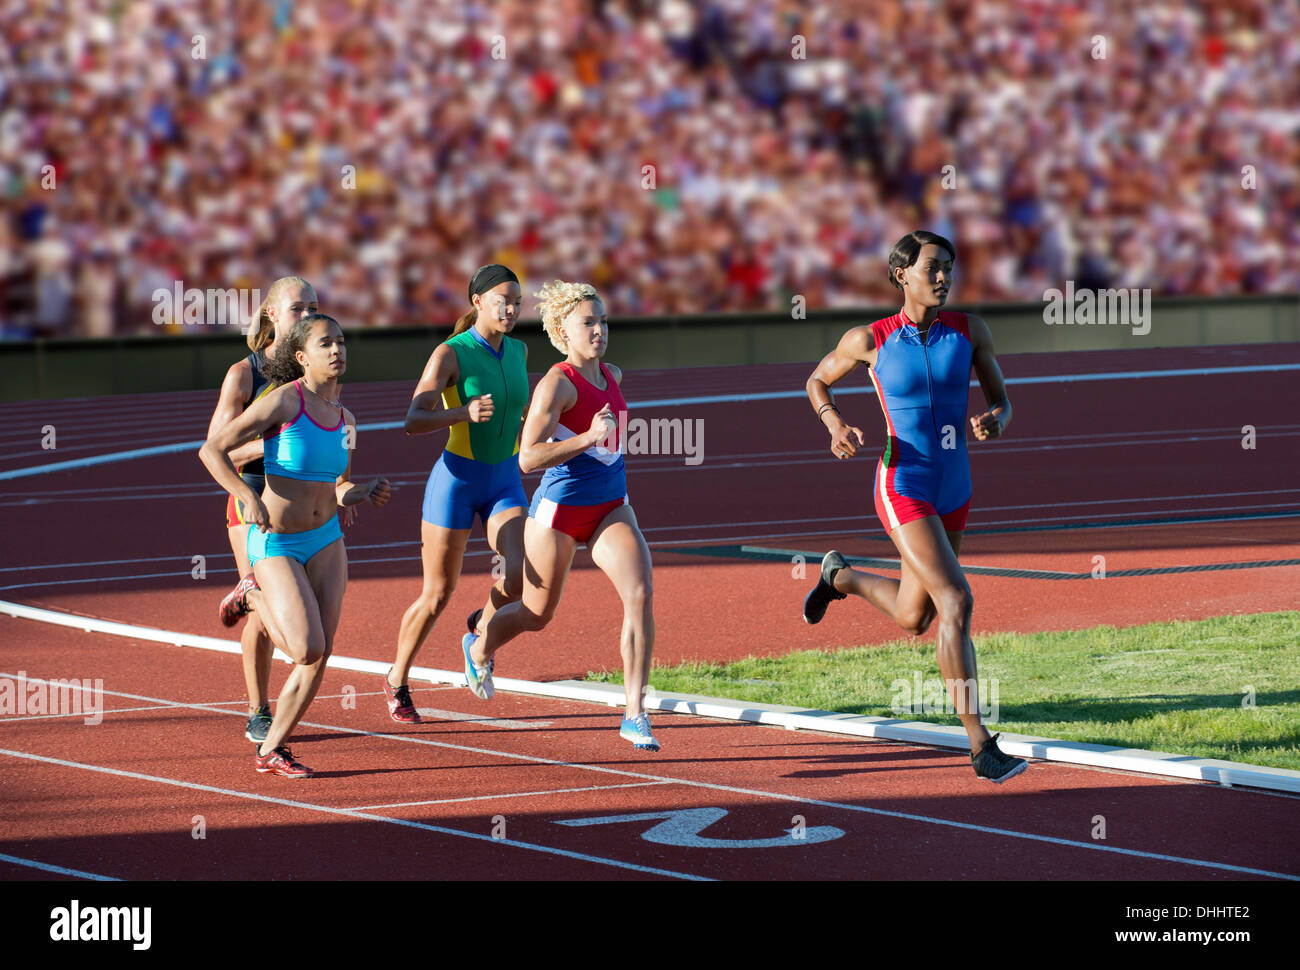 Runners racing on track - Stock Image